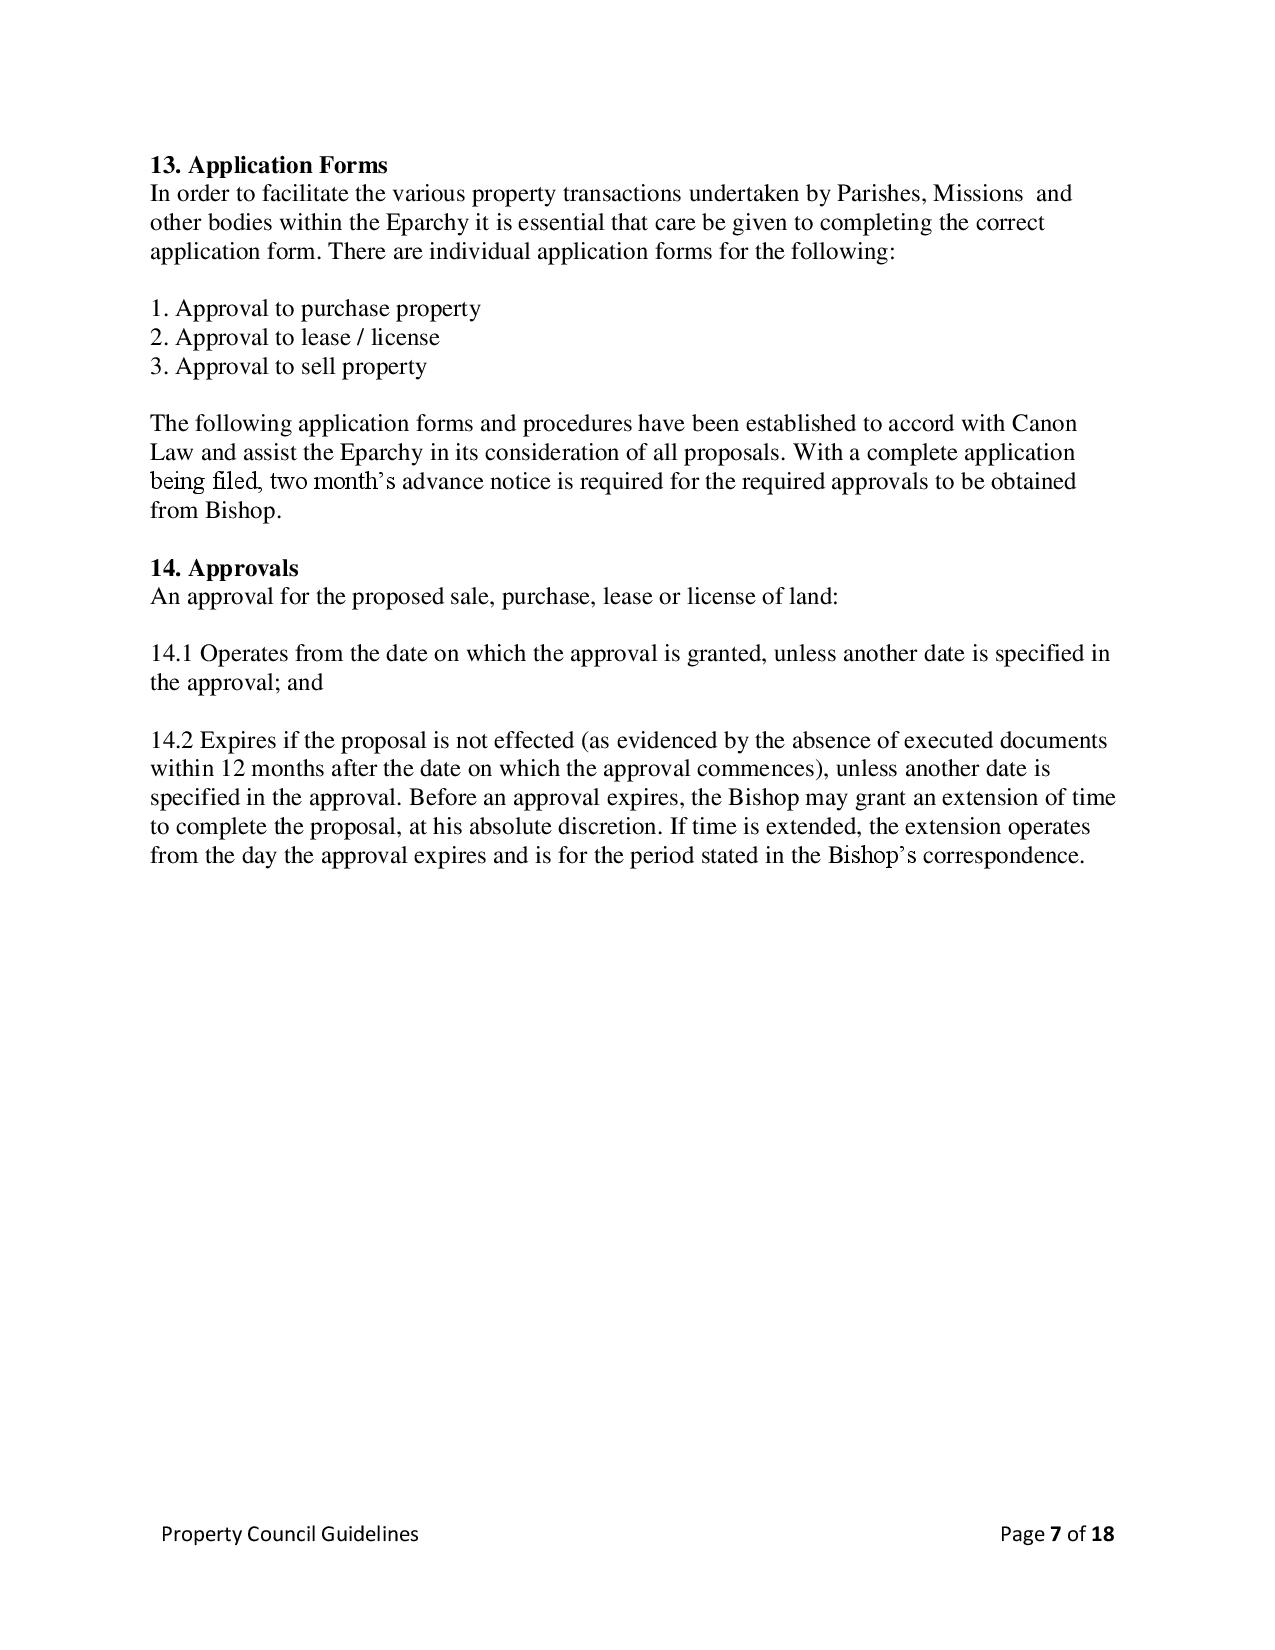 property-council-guidlines-v2-4-page-007